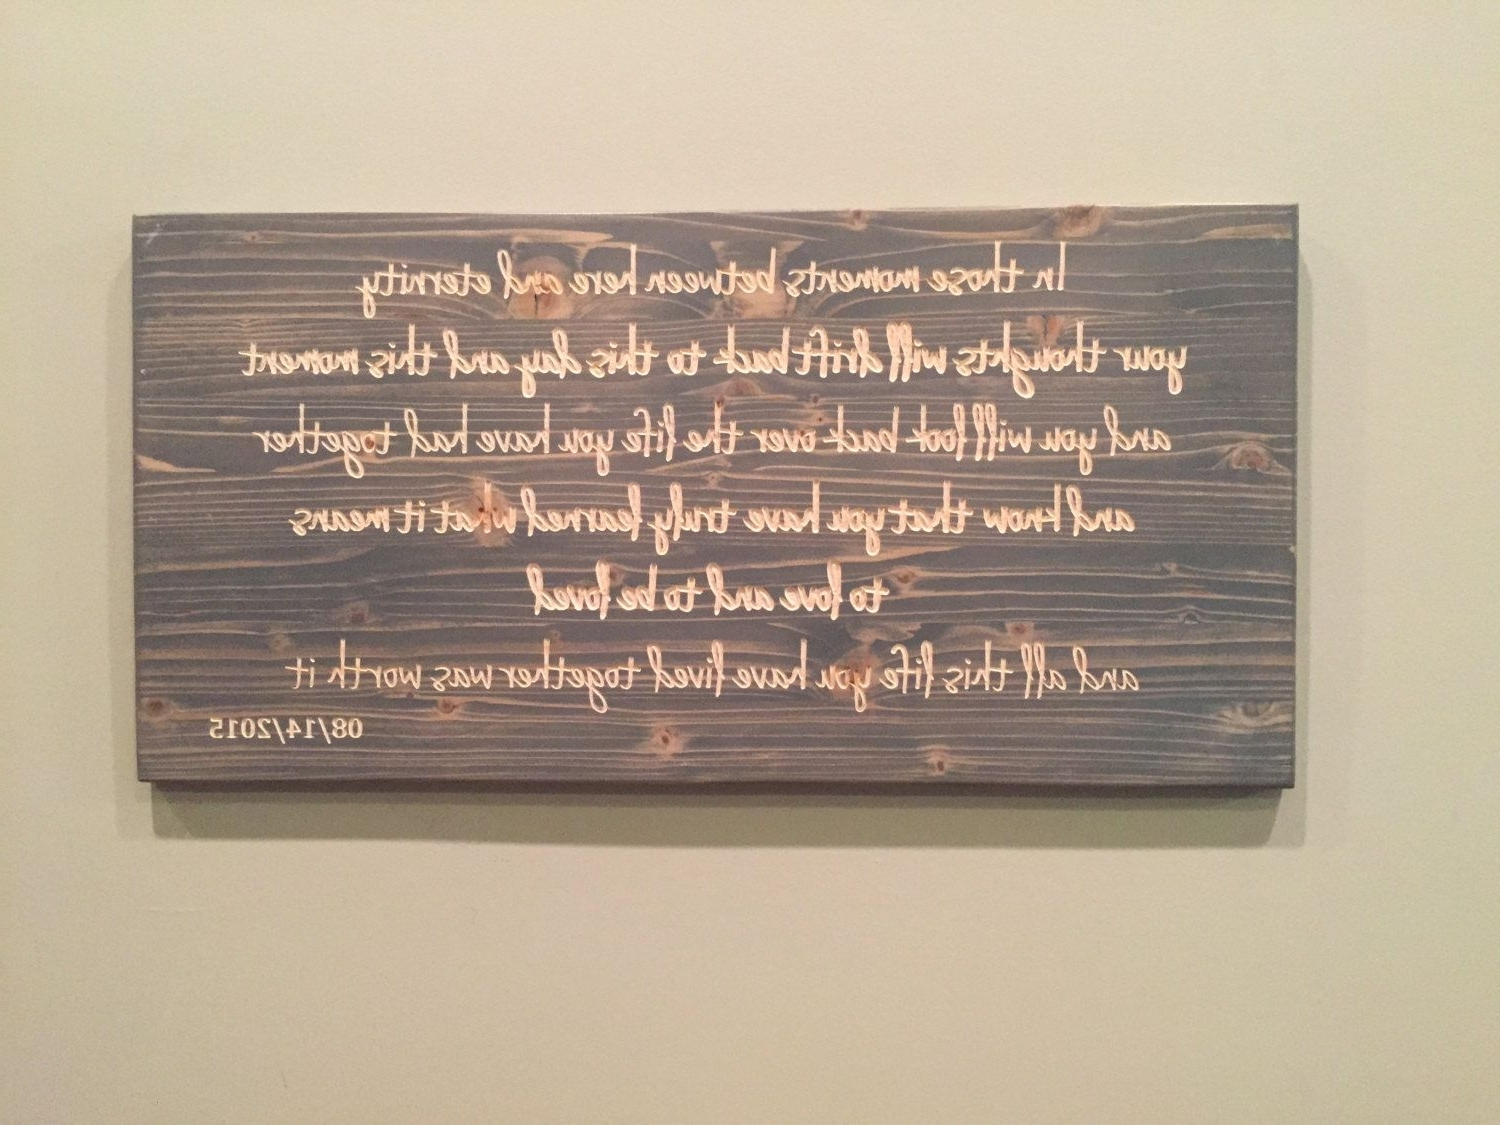 Wedding Vows, Carved Wood, Custom Quote Sign, Carved Wood Wall Art Throughout Latest Wood Wall Art Quotes (View 8 of 15)